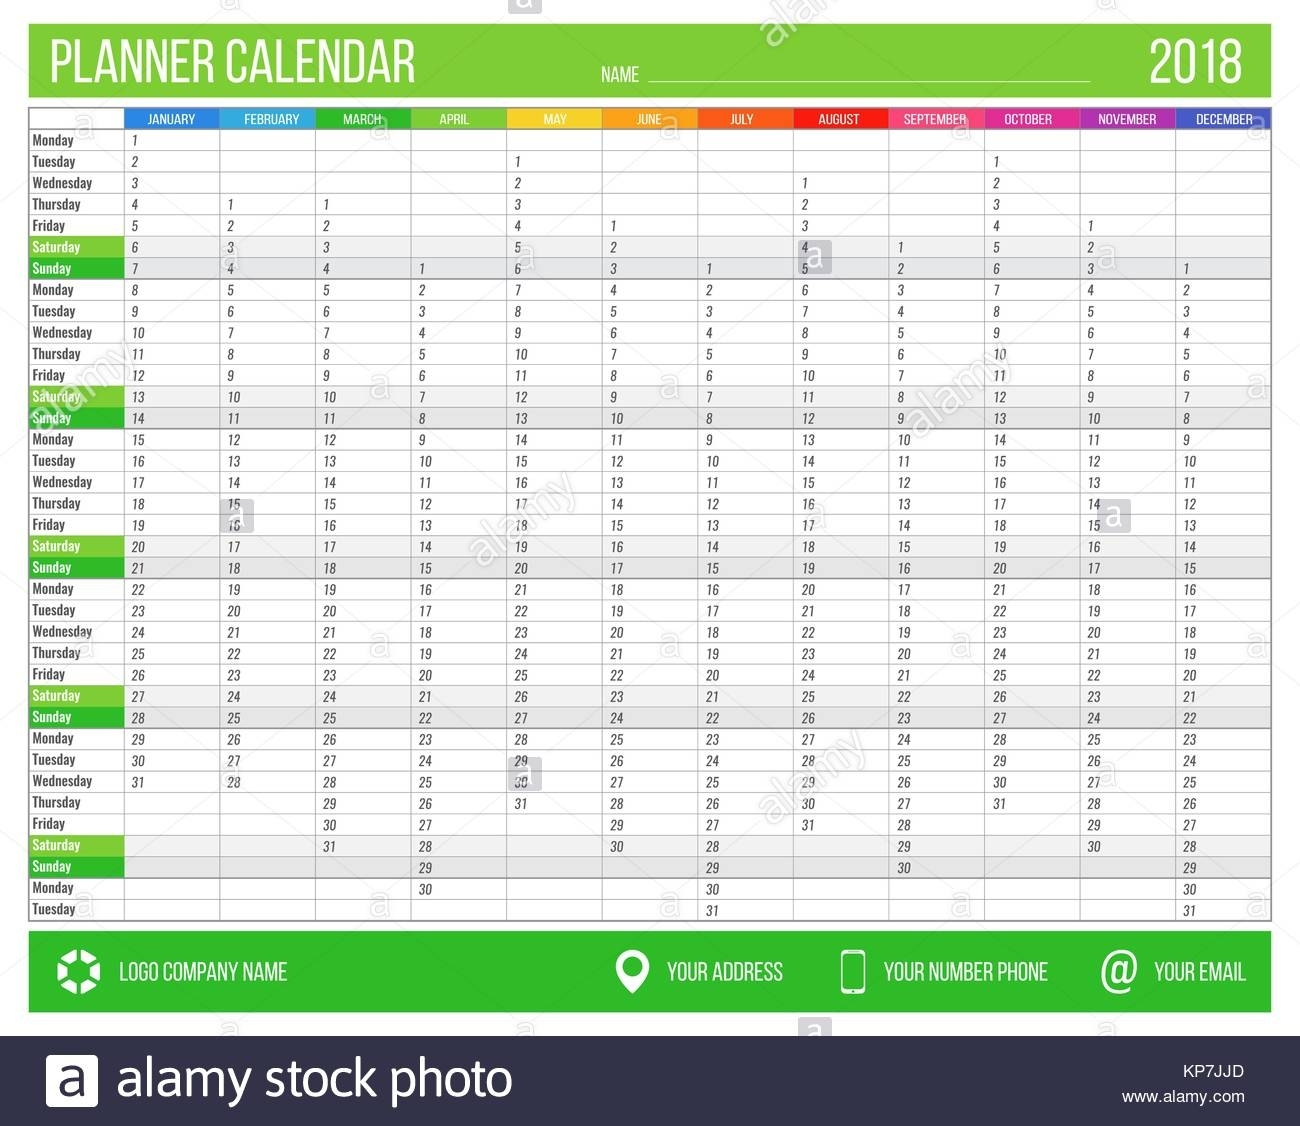 Wall Planner Stock Photos & Wall Planner Stock Images - Alamy inside Printable Neon 12 Month Blank Calendar